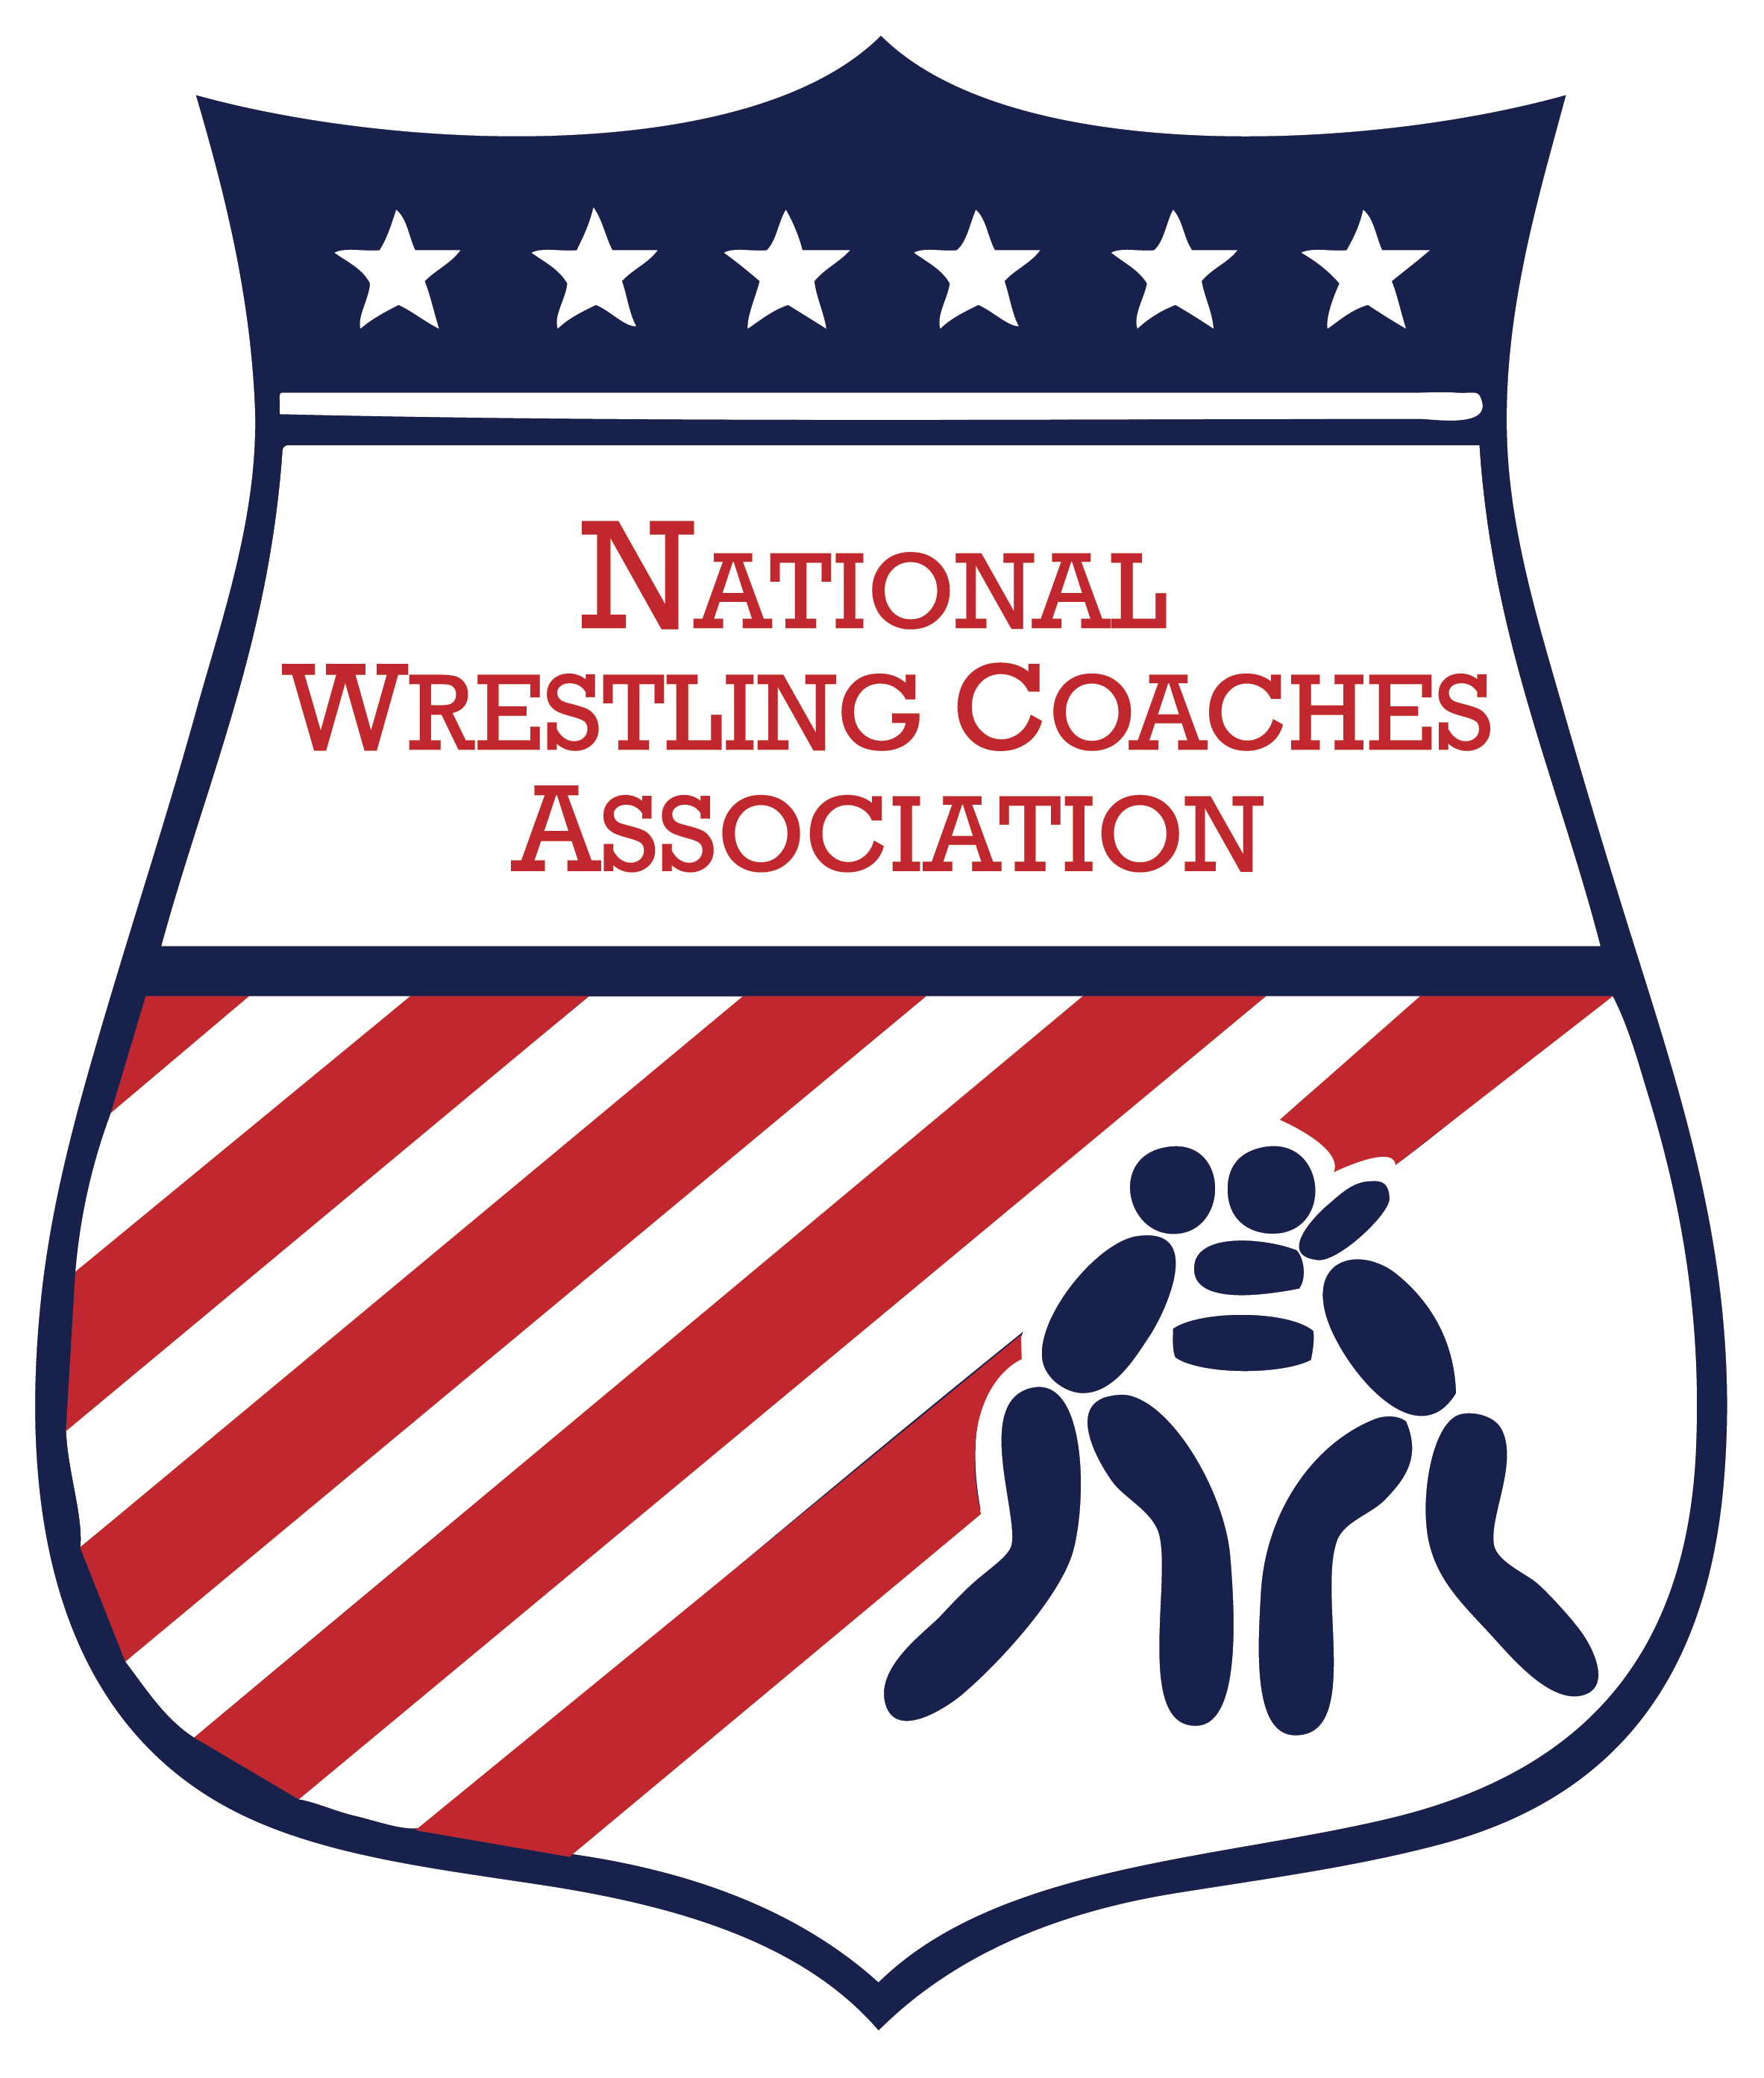 National Wrestling Coaches Association Logo